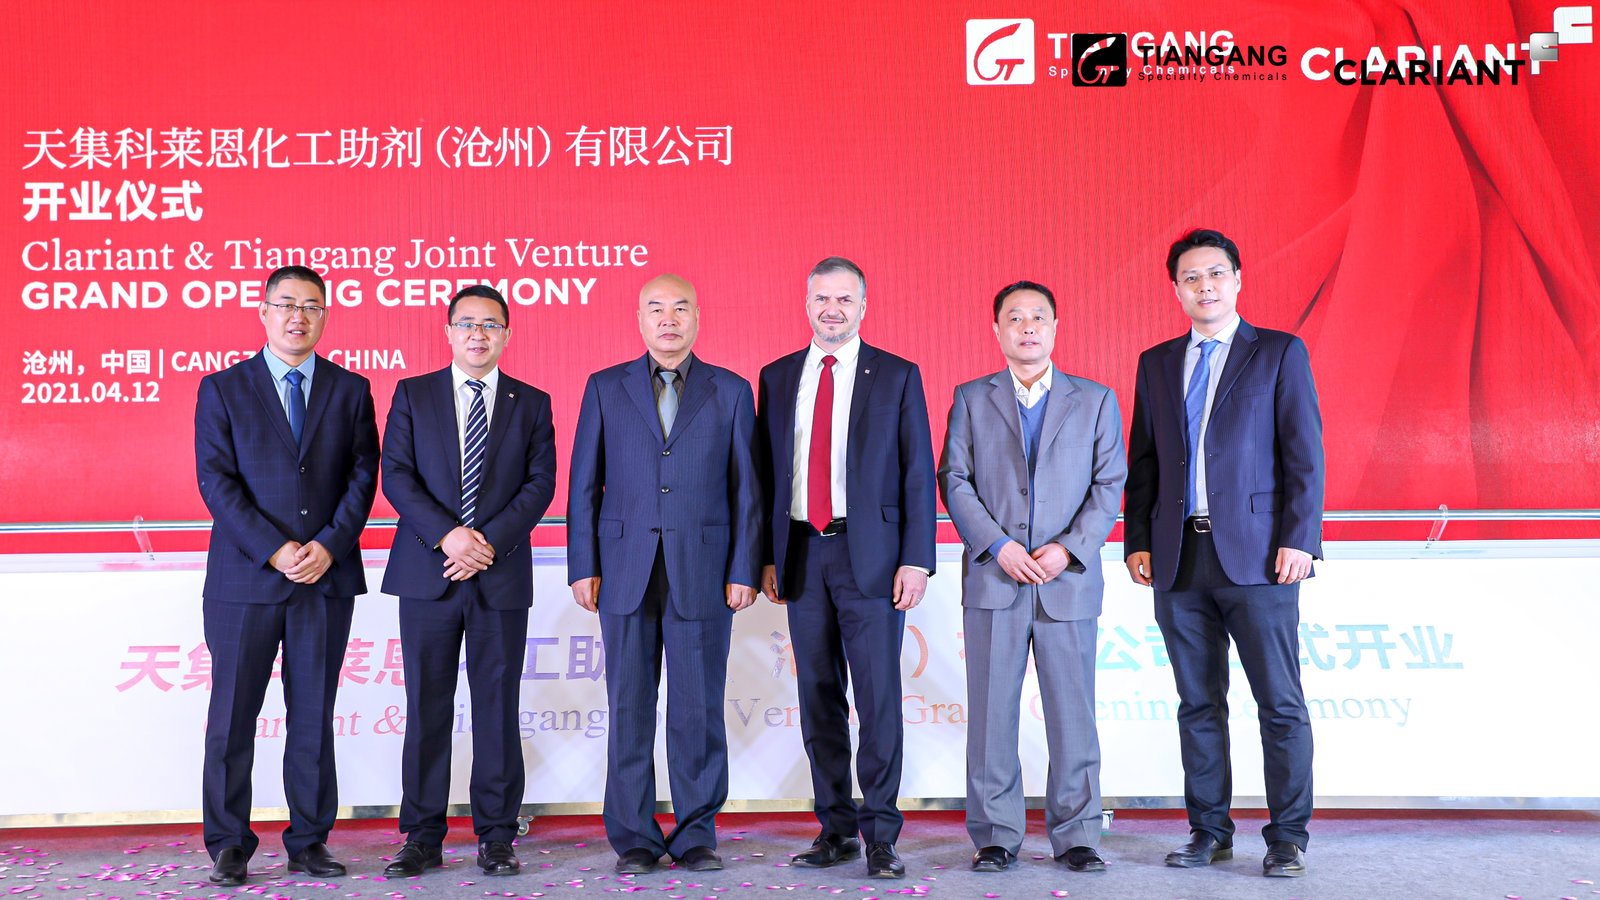 Tiangang & Clariant joint venture production facility for high-end stabilizer additives opened in Cangzhou